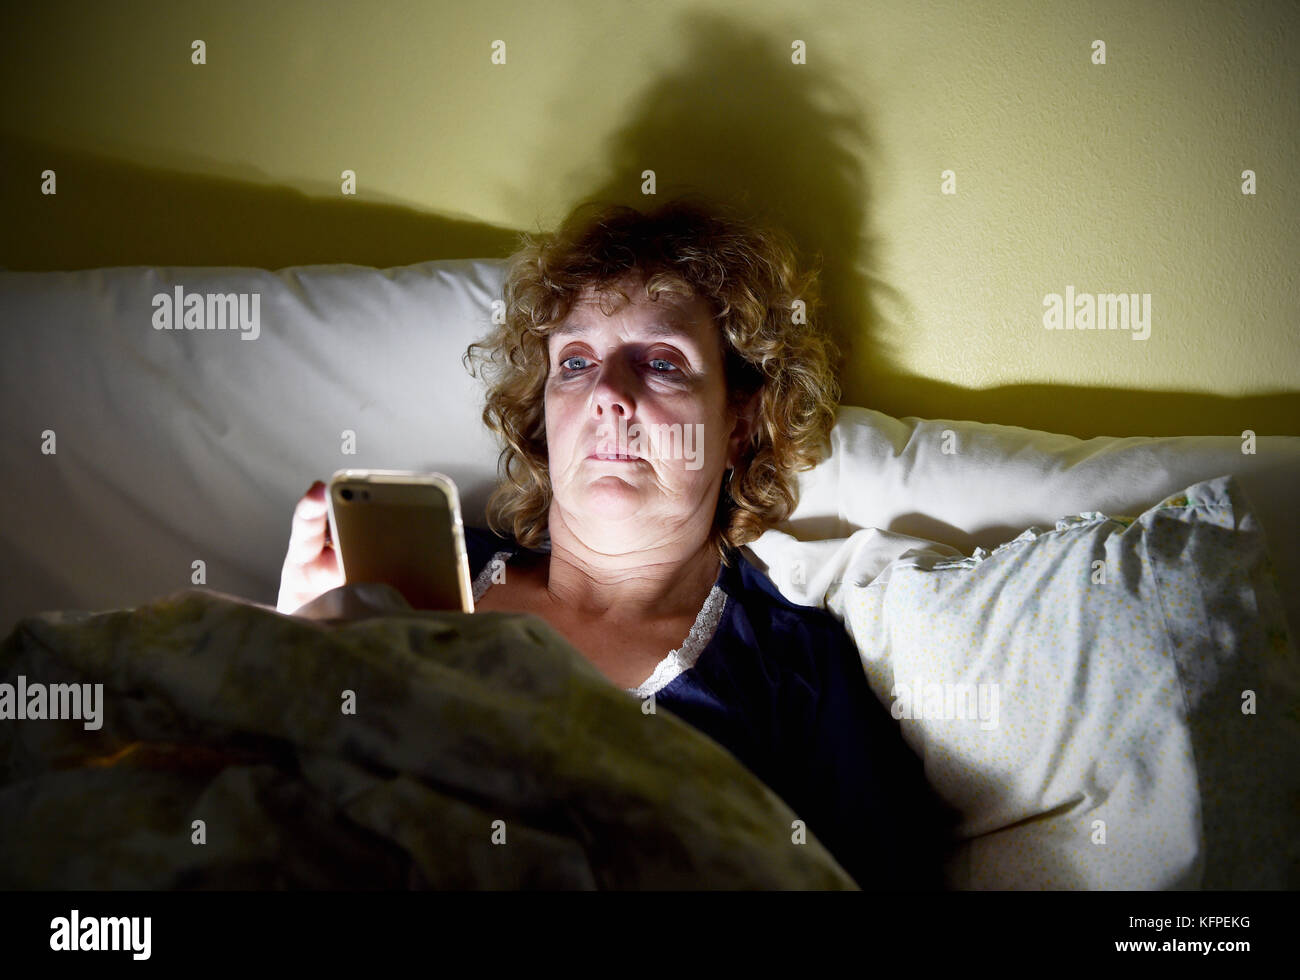 Middle aged woman reading her Apple iPhone smartphone in bed at night - Stock Image